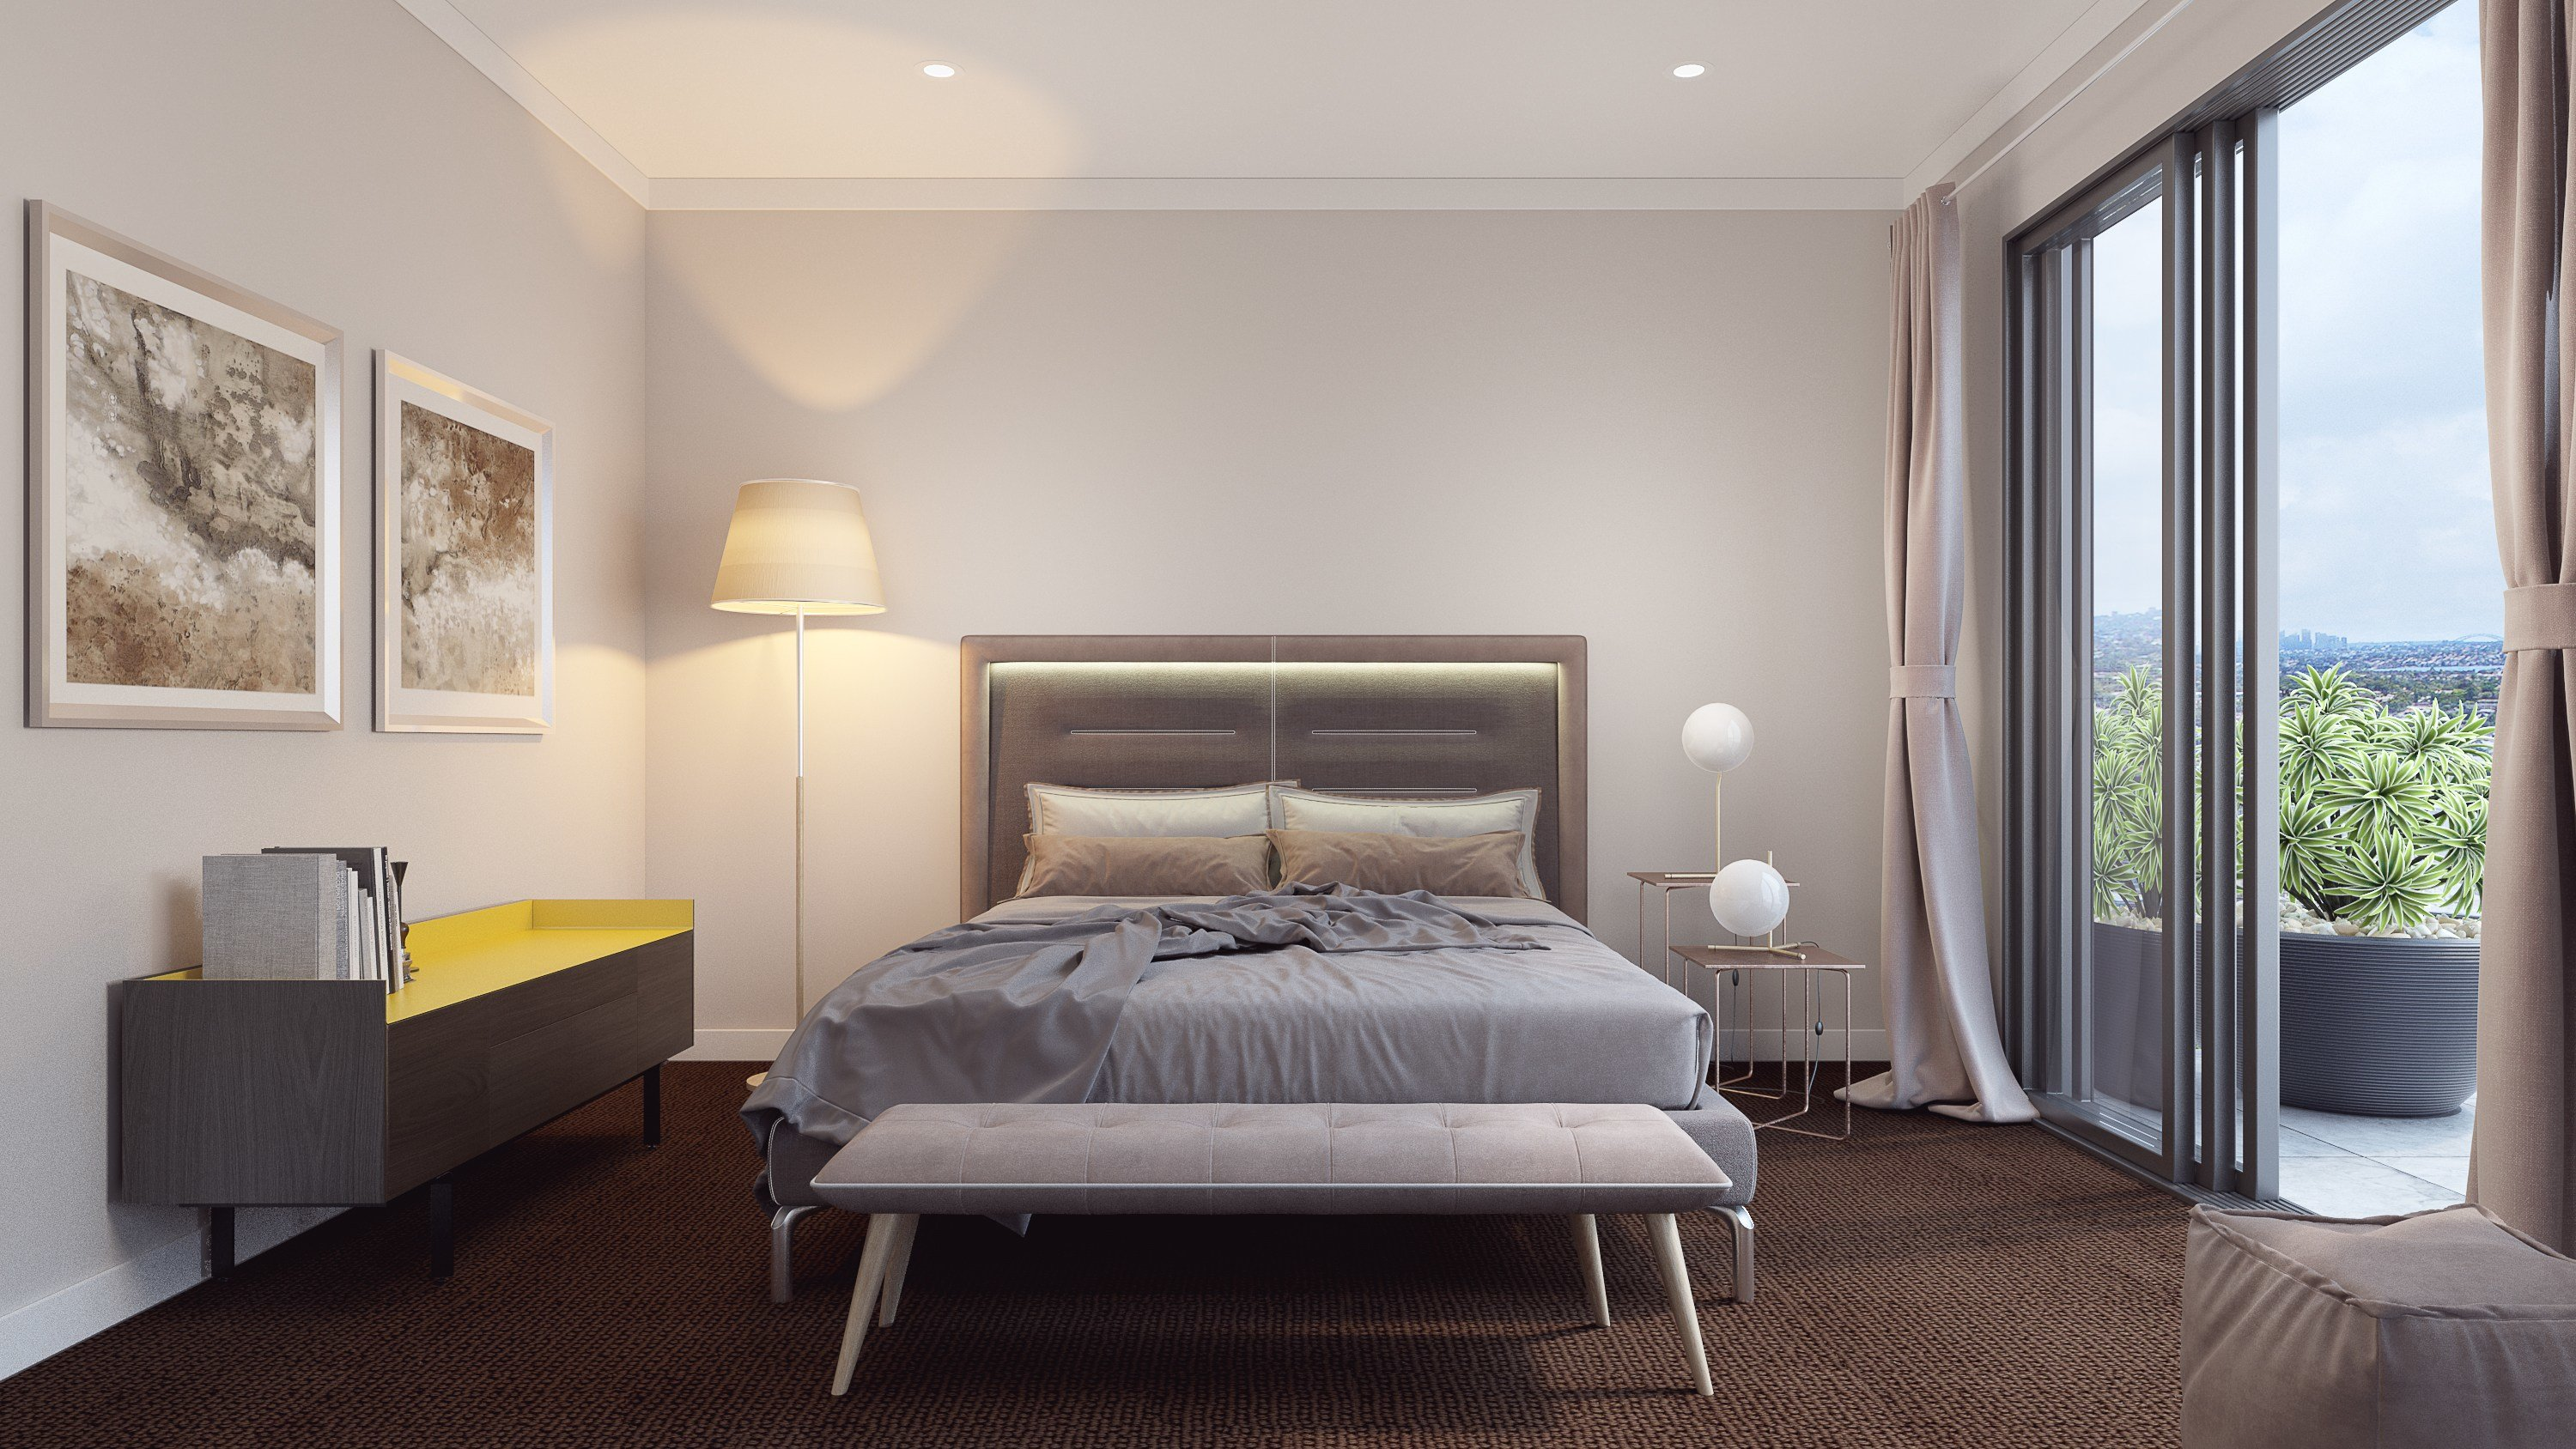 Best One Bedroom Apartments Sydney – Enia Apartments With Pictures